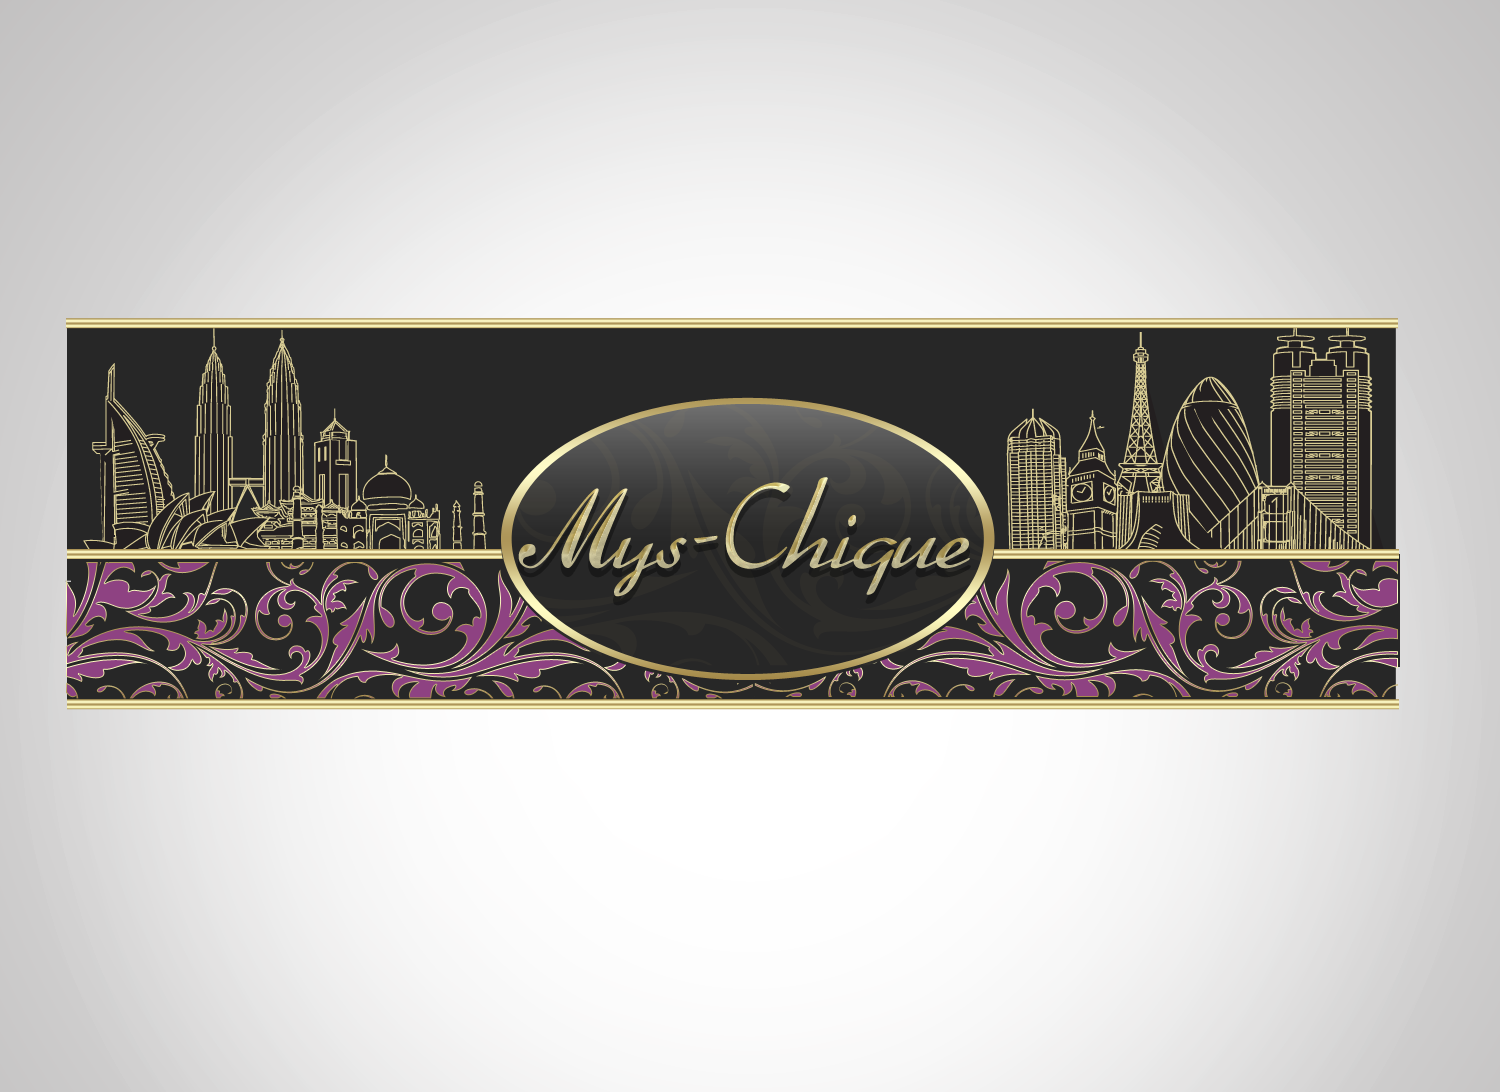 Help Mys-Chique with a new logo